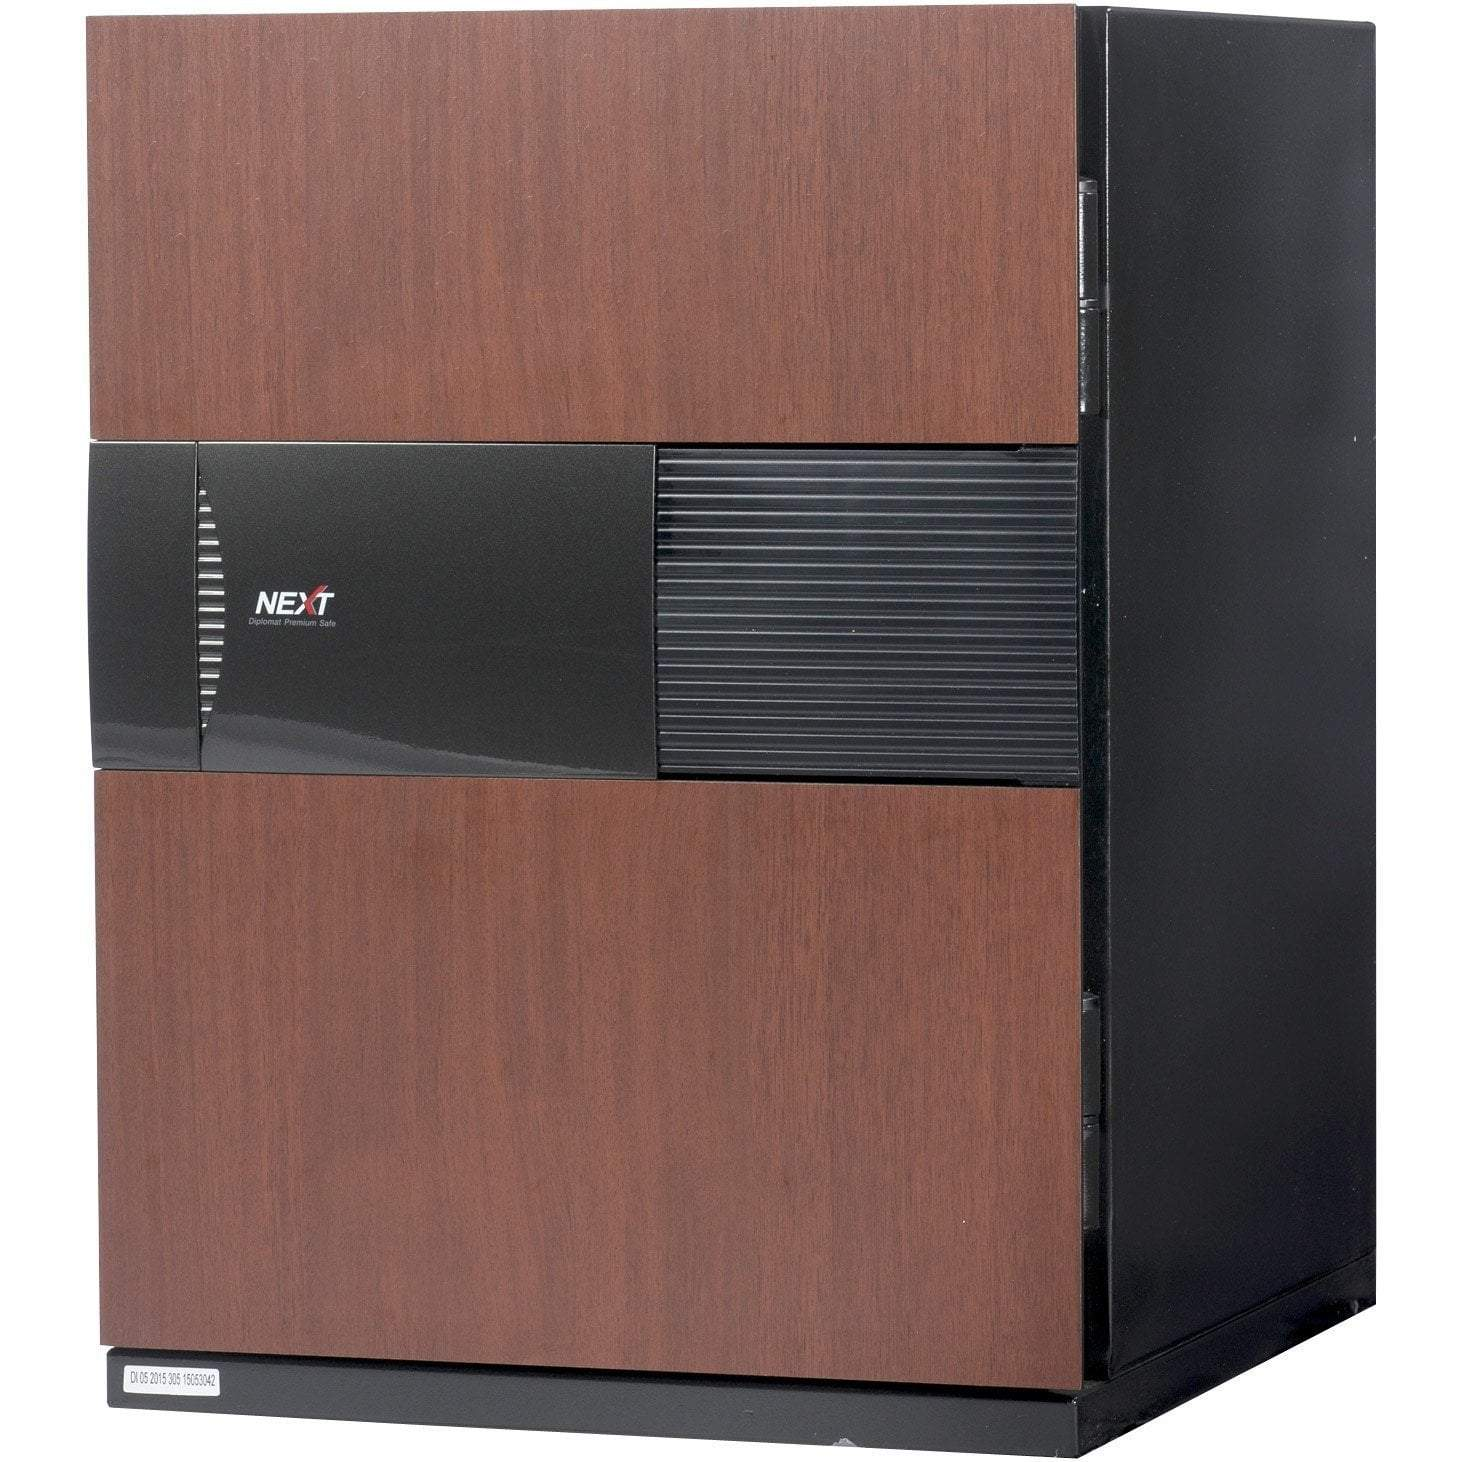 Phoenix DPS7500-S NEXT Digital Lock Luxury Fireproof Safe with Cherry Door 2.7 cu ft Armadillo Safe and Vault